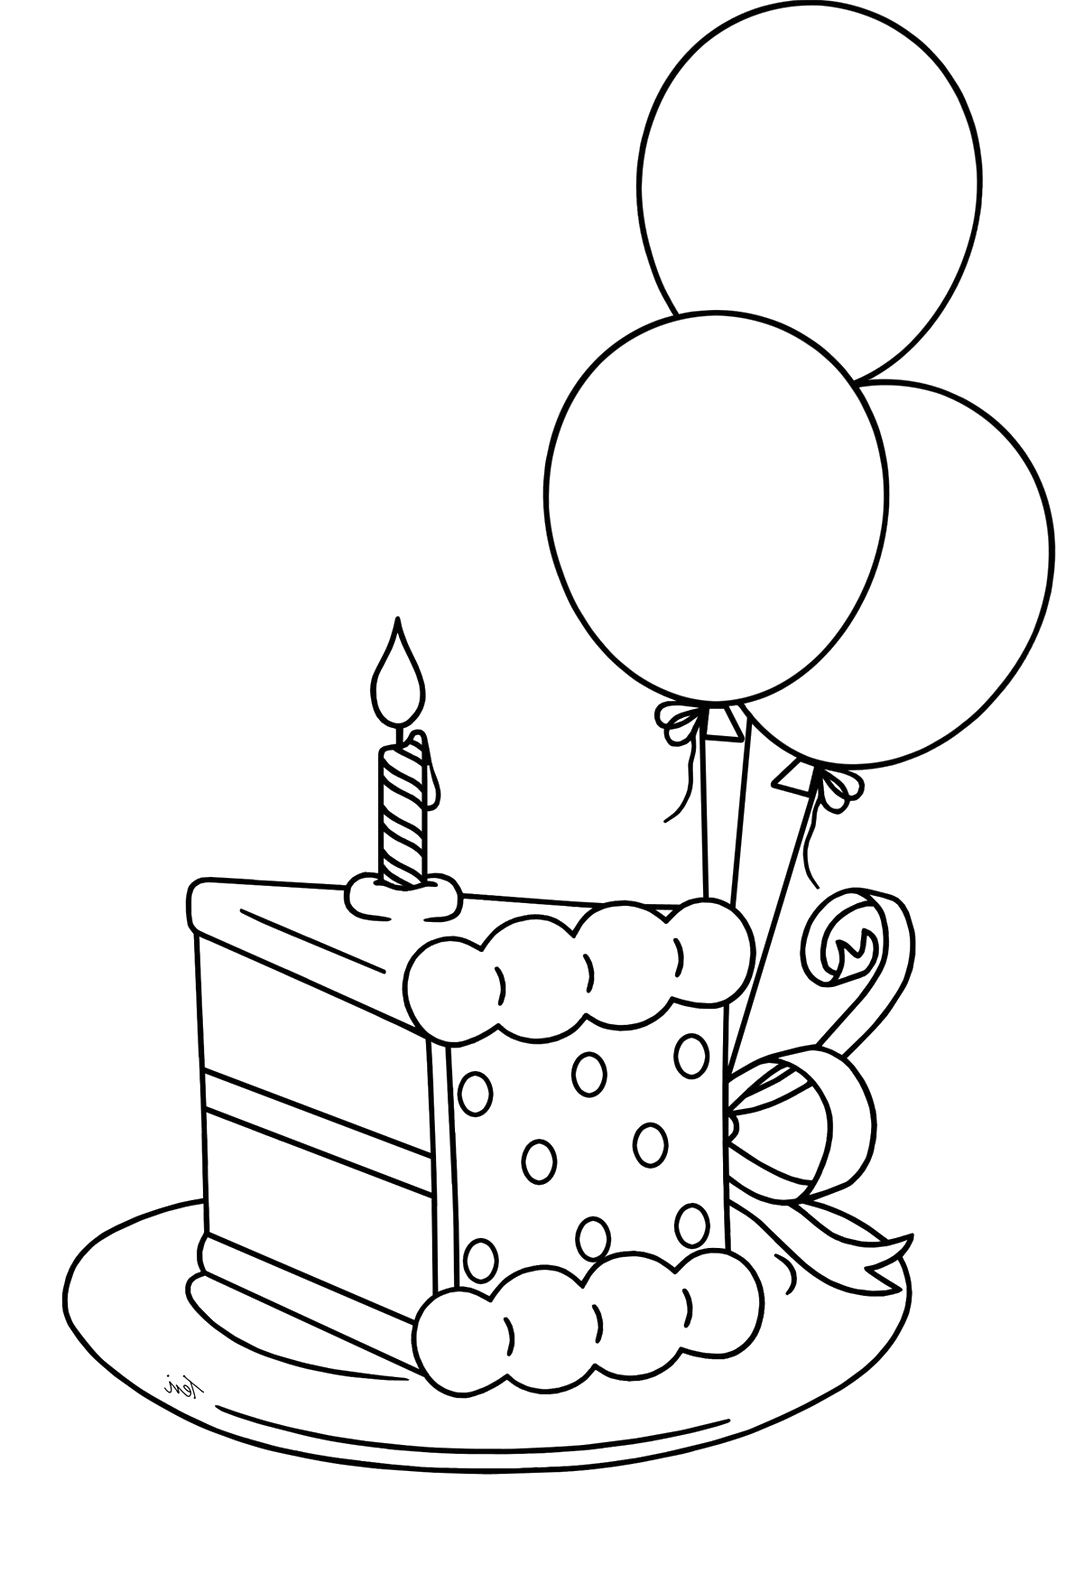 Slice The Cake That Will Be Packed Birthday Coloring Pages | digi ... for Drawing Cake Slice  535wja